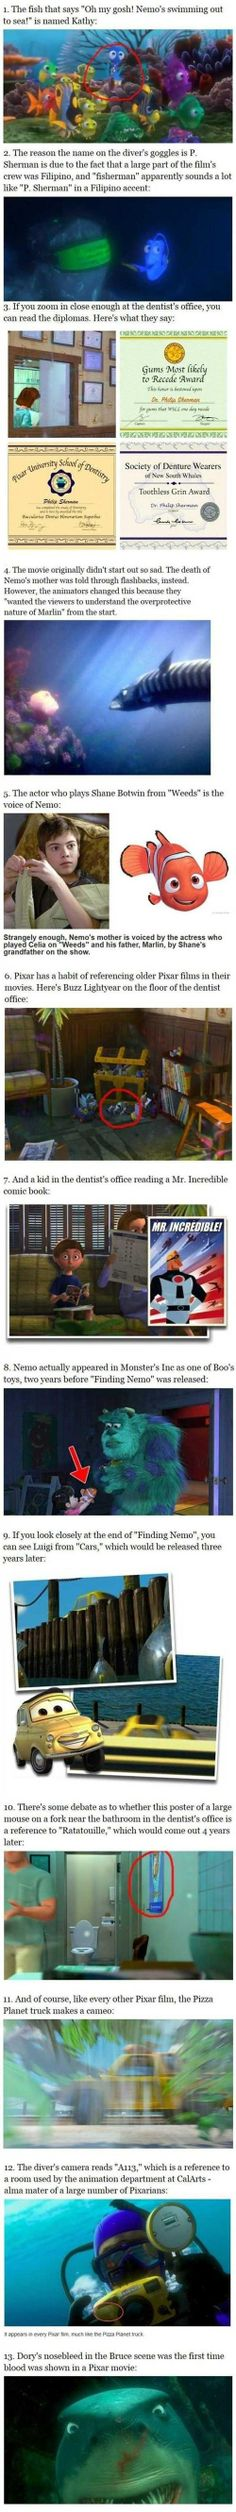 Finding Nemo facts.I love this LOVE THIS!!!!!!!!!!!!!!!!!!!!!!!!!!!!!